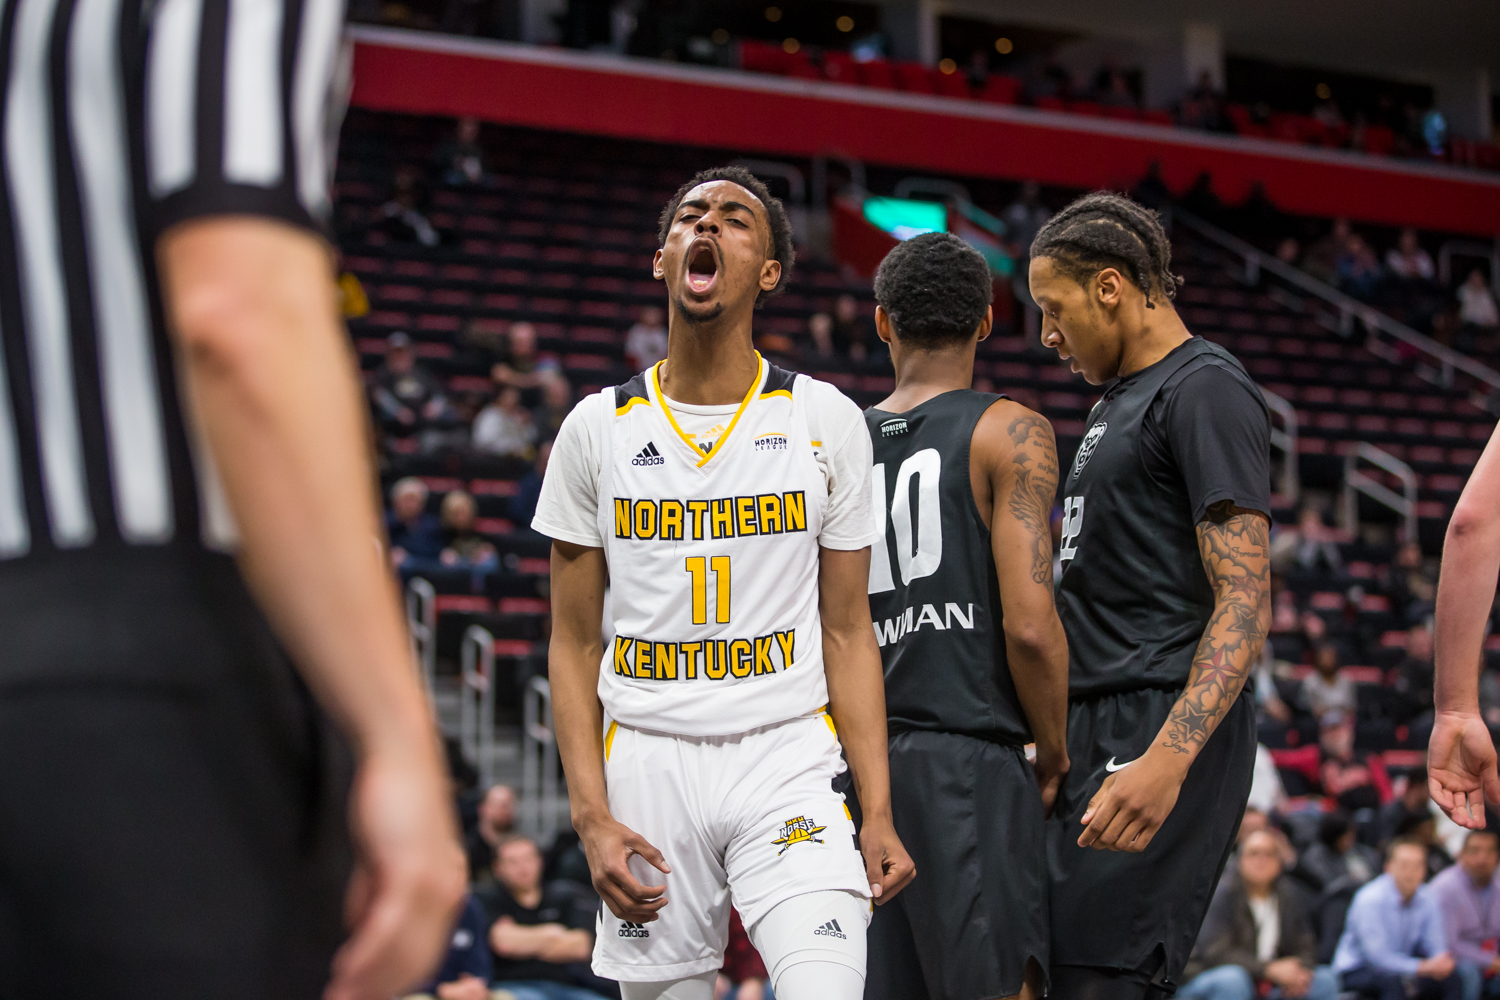 Jalen Tate (11) screams after earning a foul shot off a made basket during the semi-final game of the Horizon League Tournament against Oakland. Tate shot 6-of-18 and was credited with the assist on the game winning three by Drew McDonald (34).